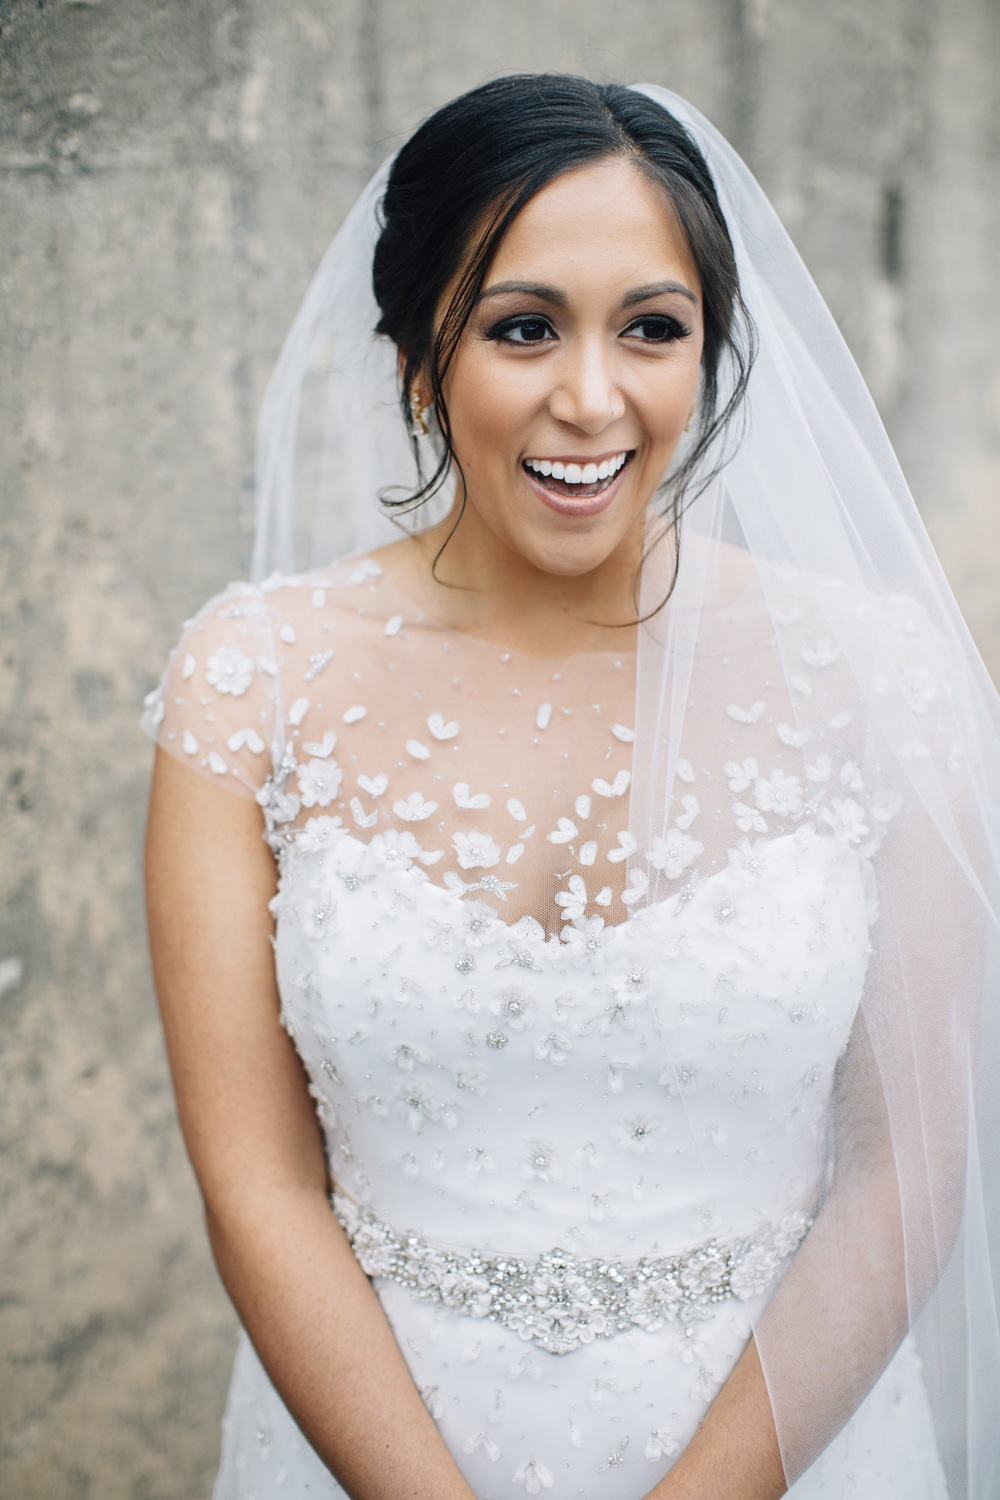 Destination Wedding | Airbrush Makeup Artist | Tymia Yvette